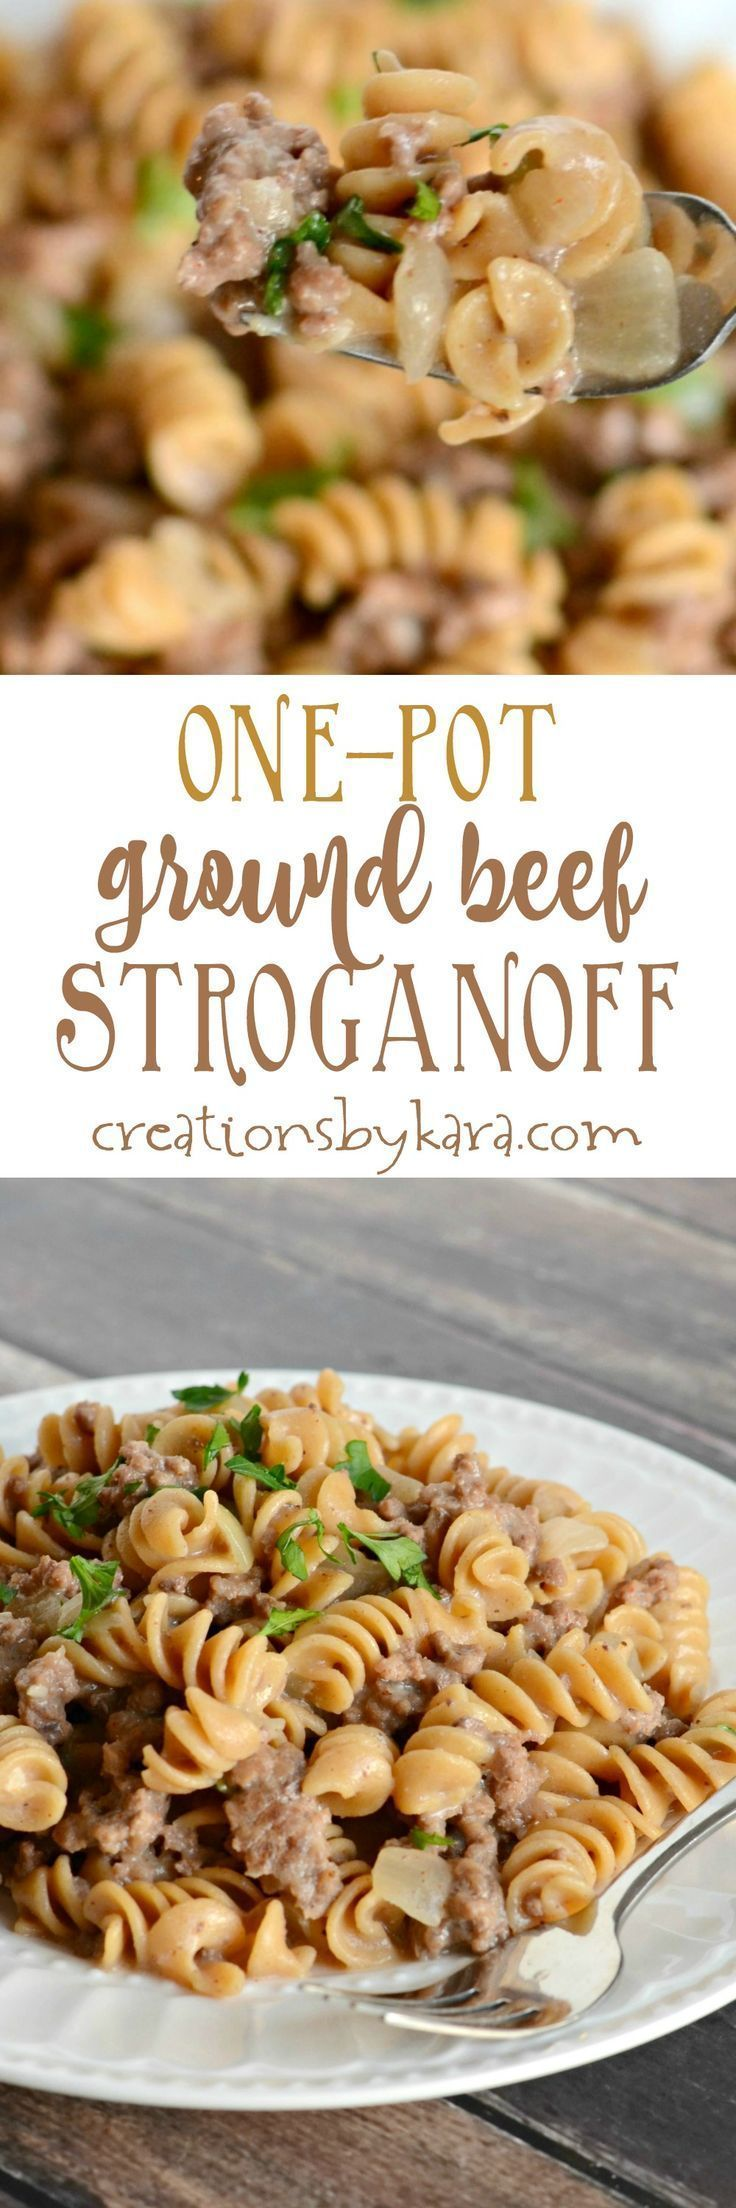 One Pot Ground Beef Stroganoff is a cinch to whip up. And it is hearty and delicious! A perfect dinner recipe for busy nights. #FamilyPastaTime #ad